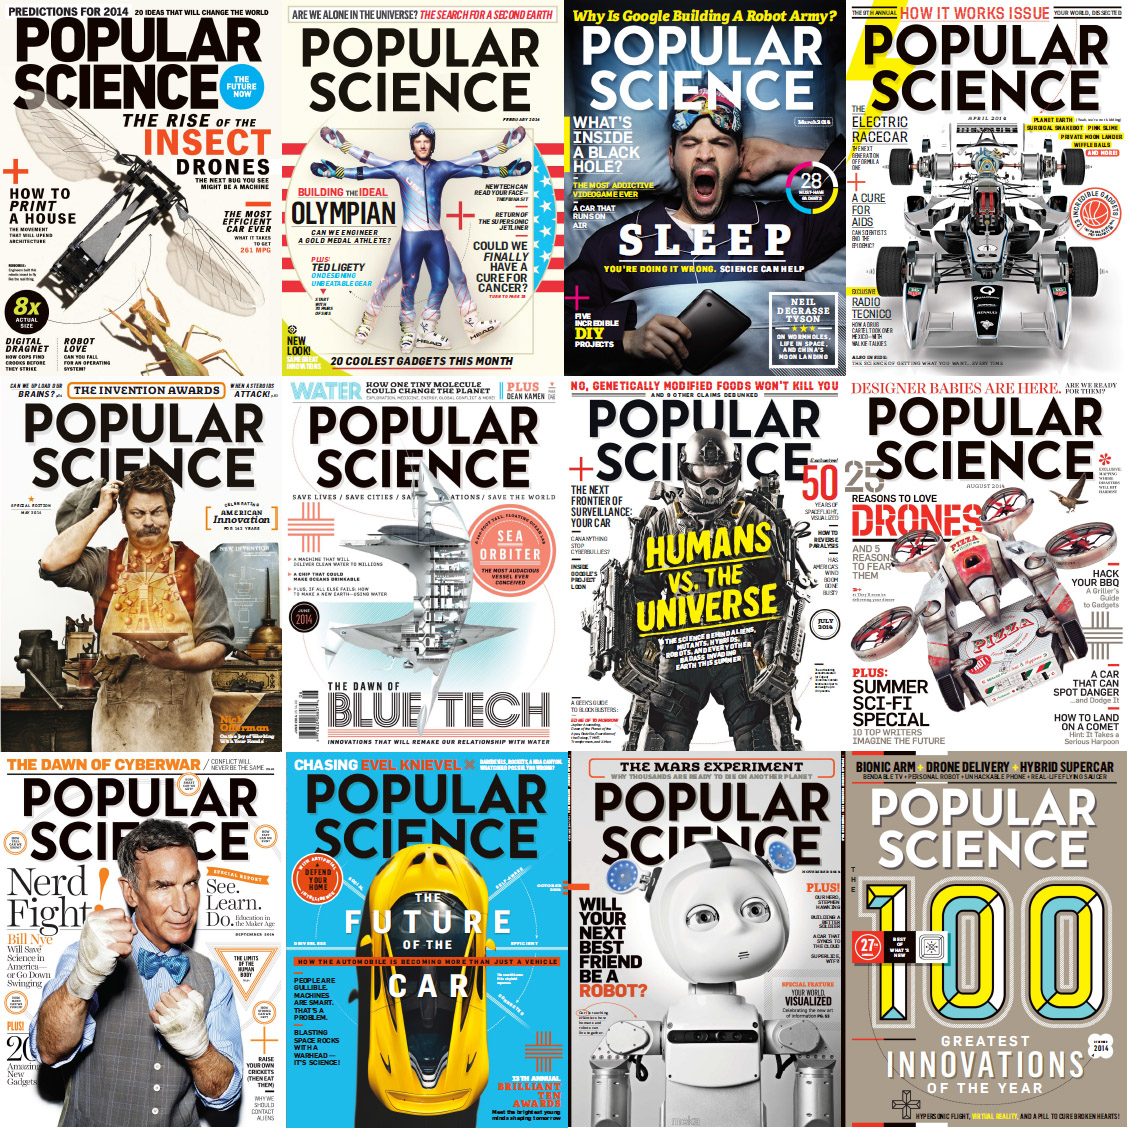 Popular Science USA Magazine - Full Year 2014 Issues Collection